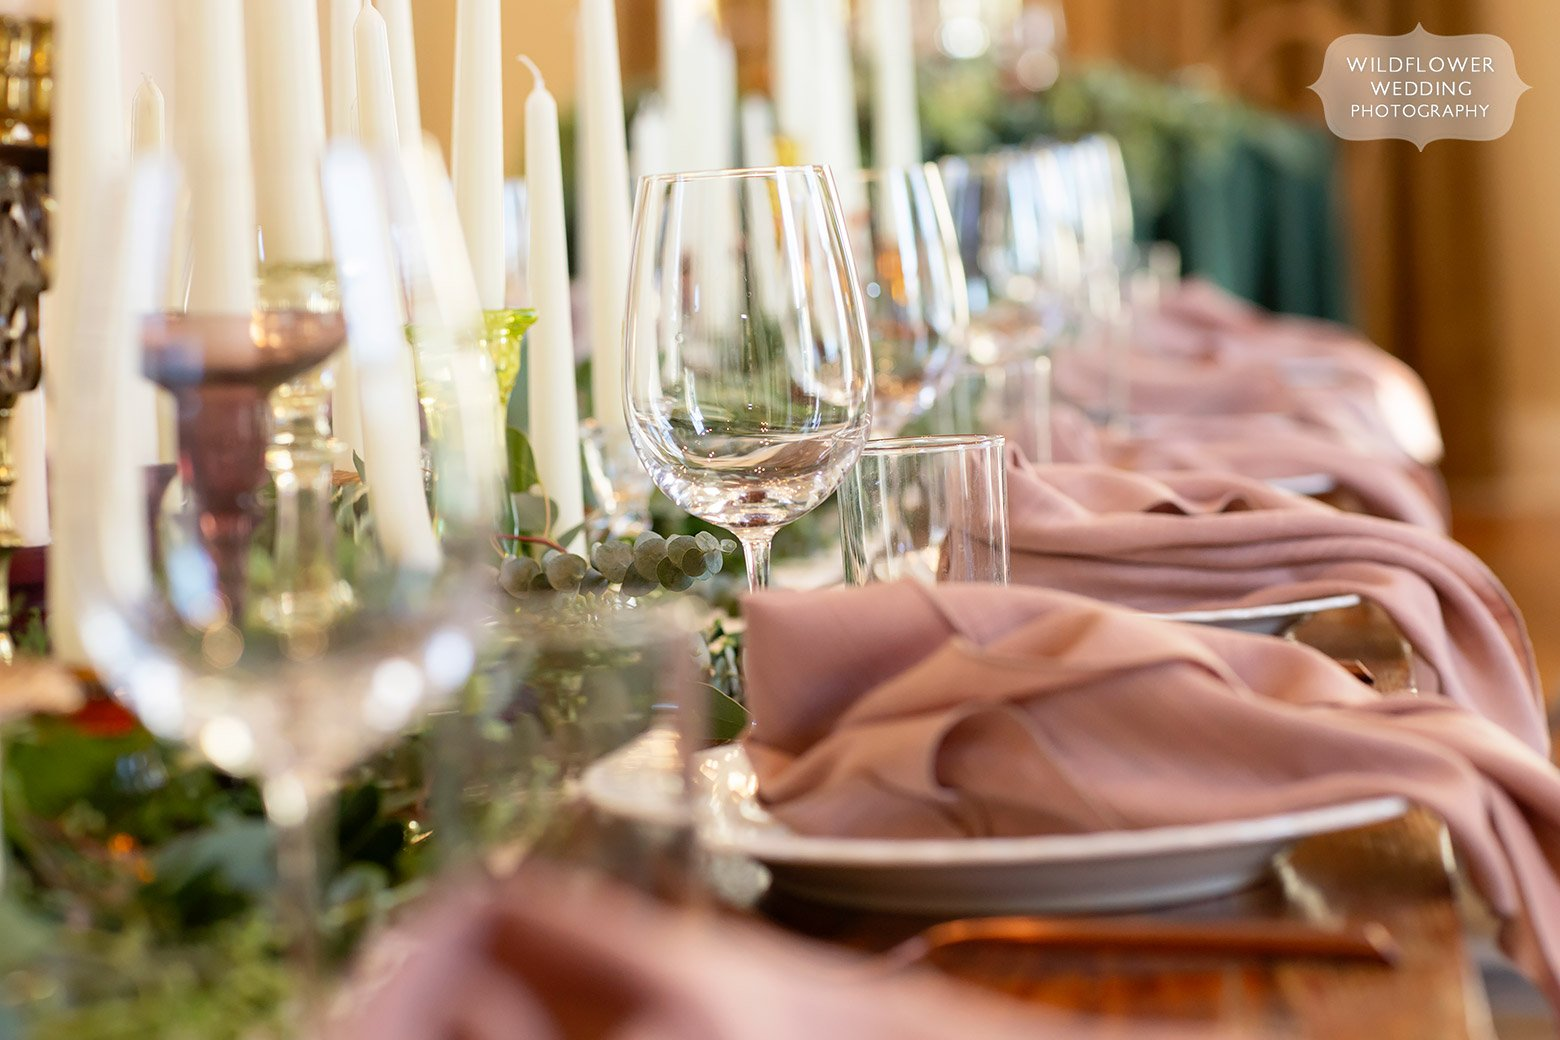 Winter wedding decor ideas with mauve and evergreen colors in mid-Missouri.